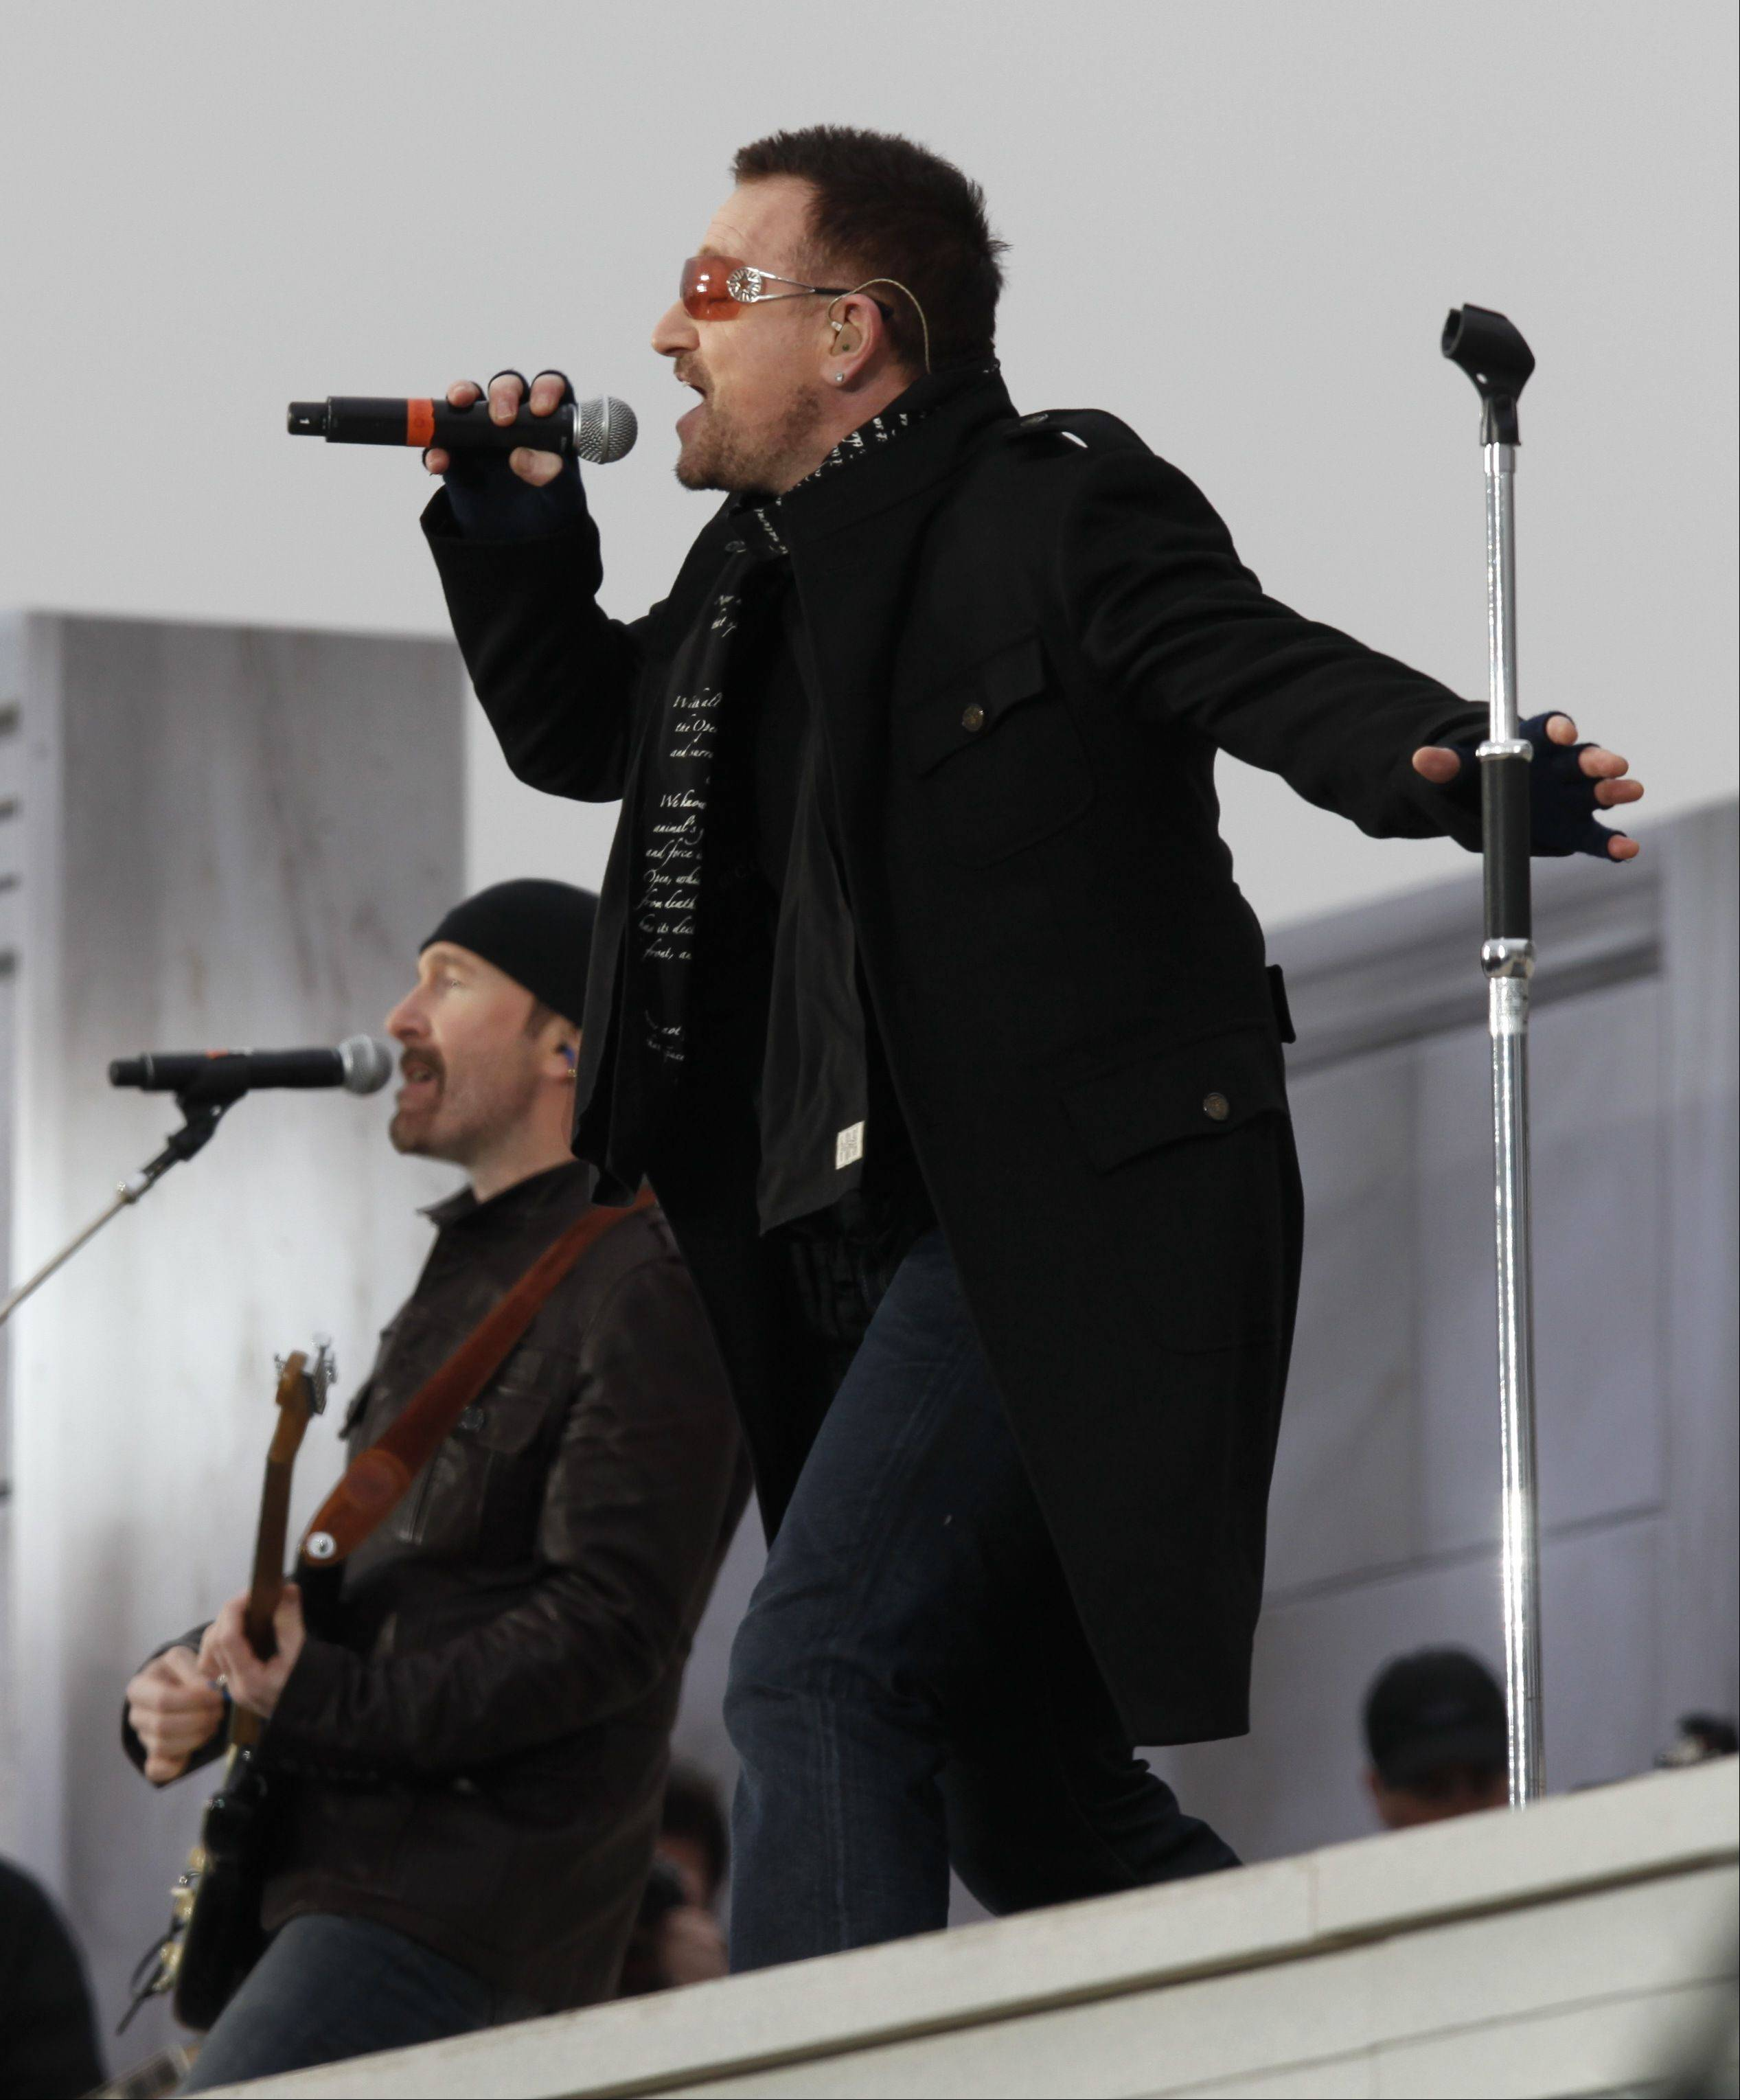 U2 frontman Bono, right, and guitarist The Edge perform at the Lincoln Memorial for President-elect Barack Obama's inaugural concert in Washington, Sunday, Jan. 18, 2009.